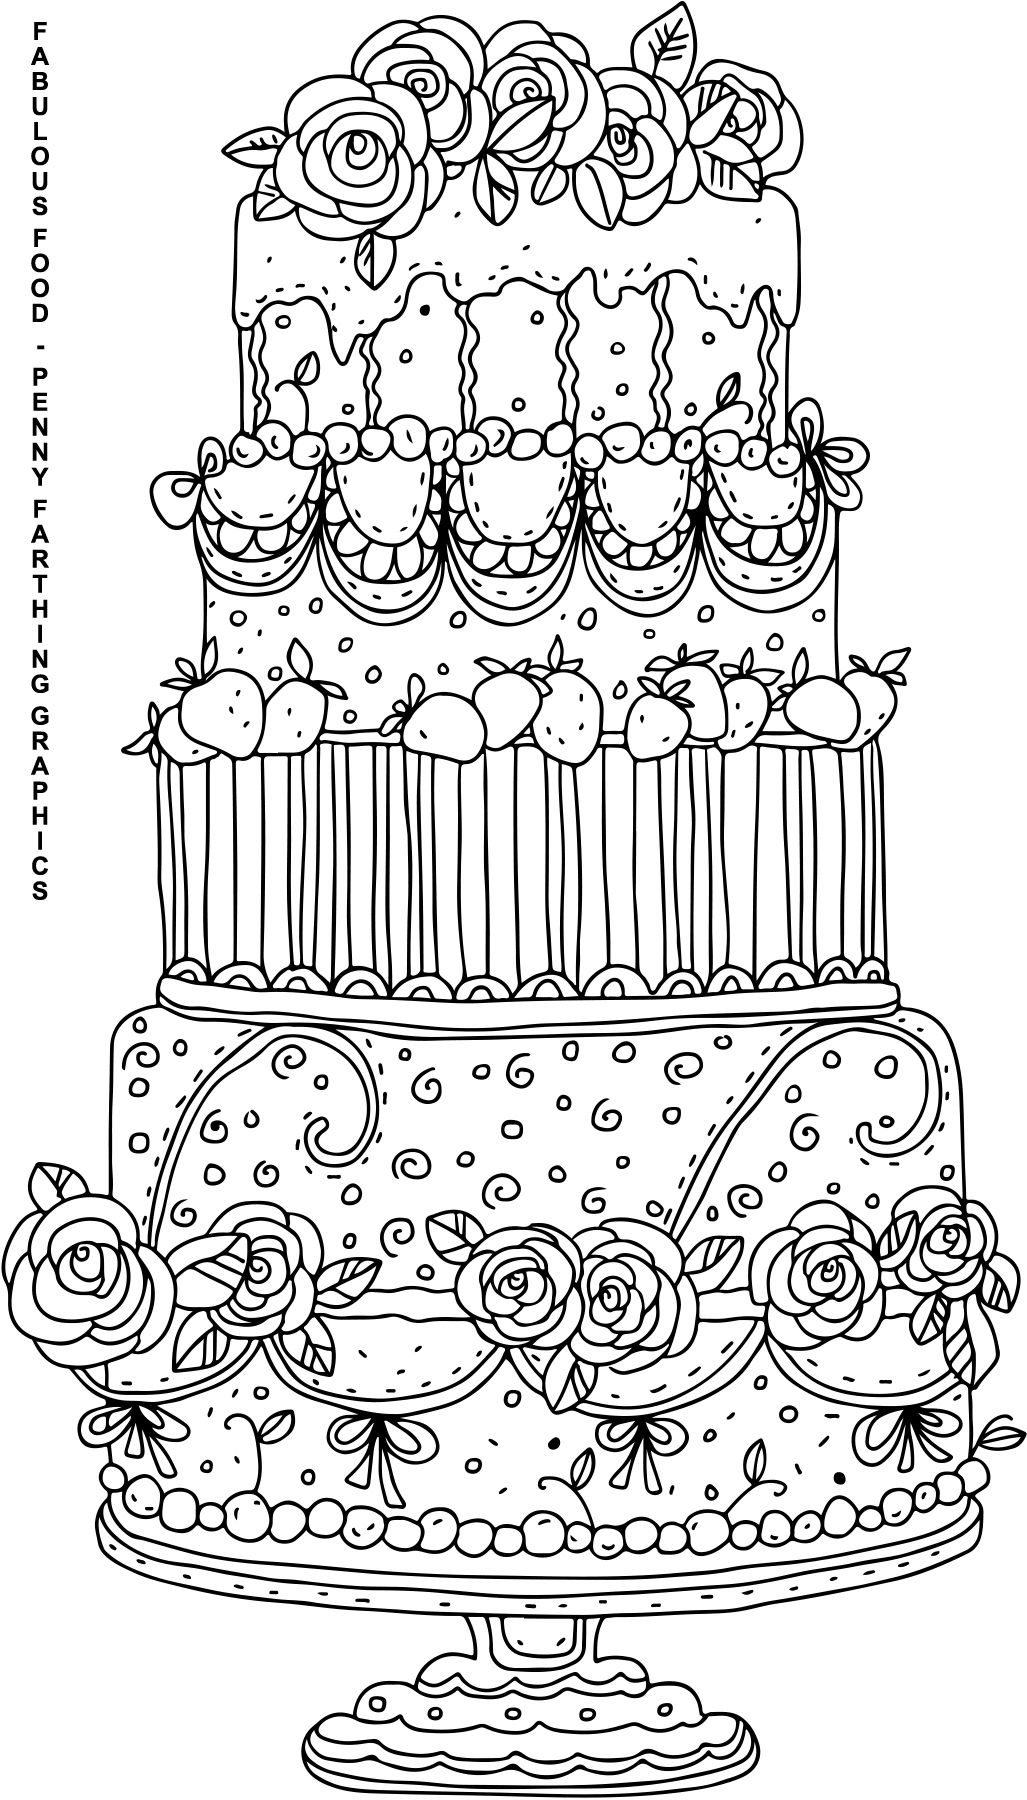 cake from quot fabulous food quot food coloring pages wedding